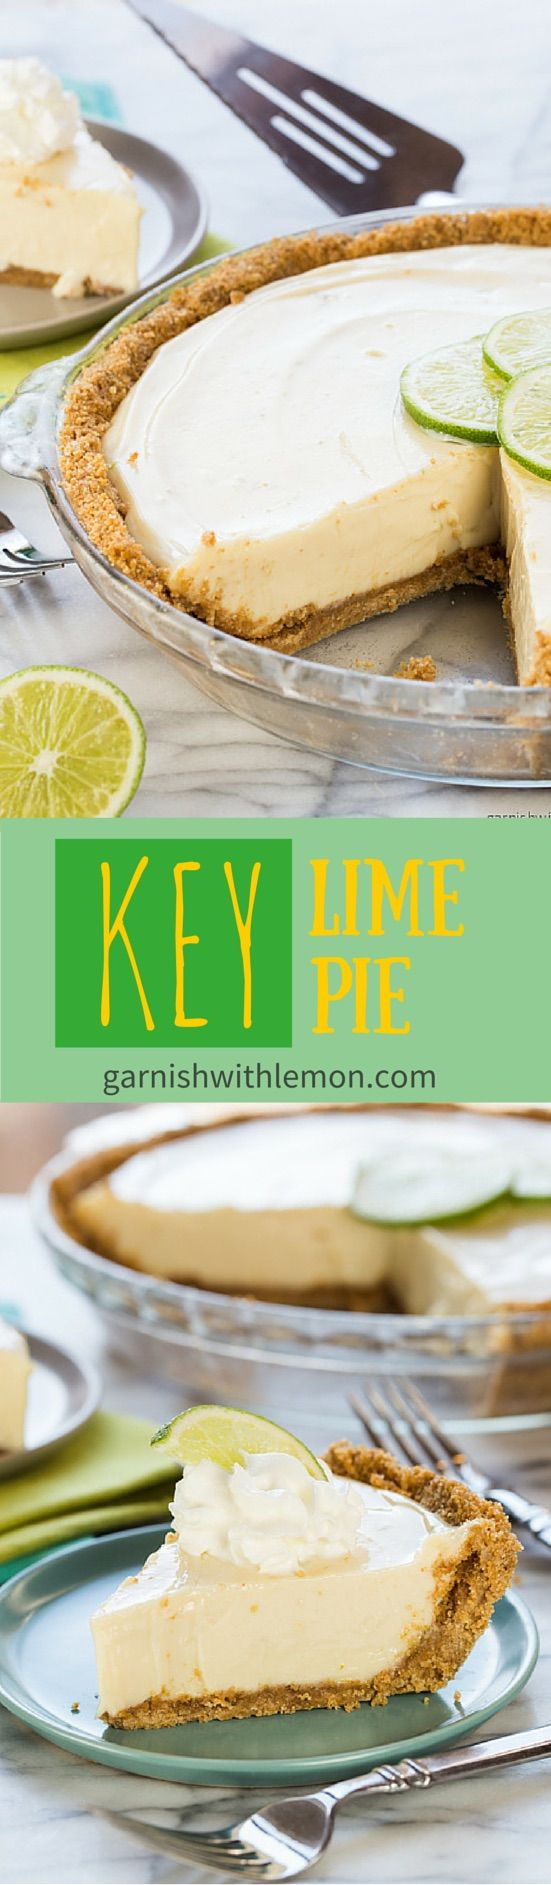 Easy Key Lime Pie Recipe ~ Just 5 ingredients is between you from this delicious and easy dessert recipe! http://www.garnishwithlemon.com